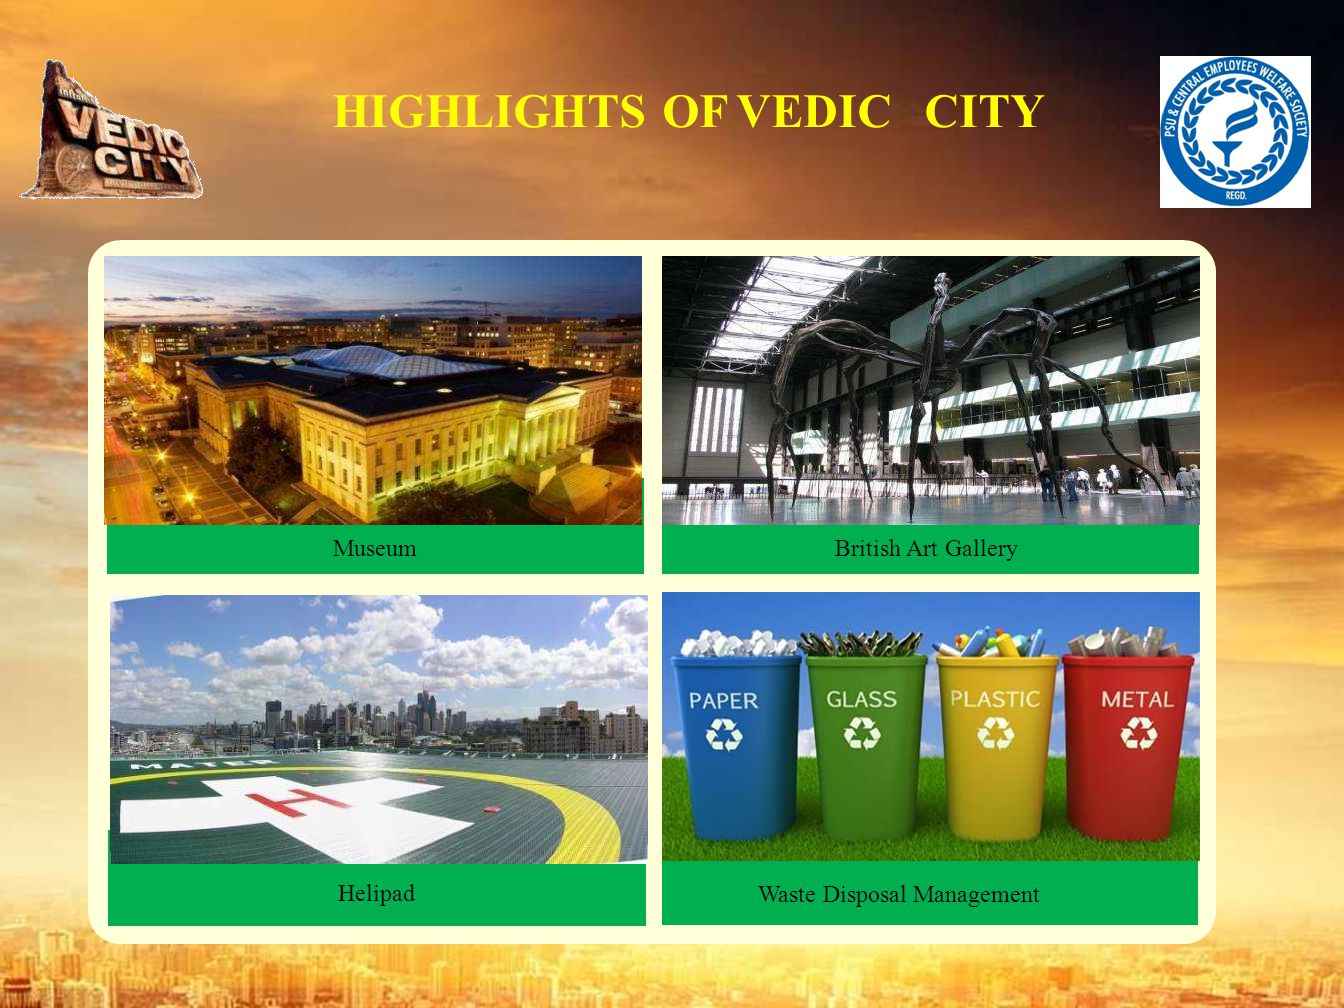 HIGHLIGHTS OF VEDIC CITY